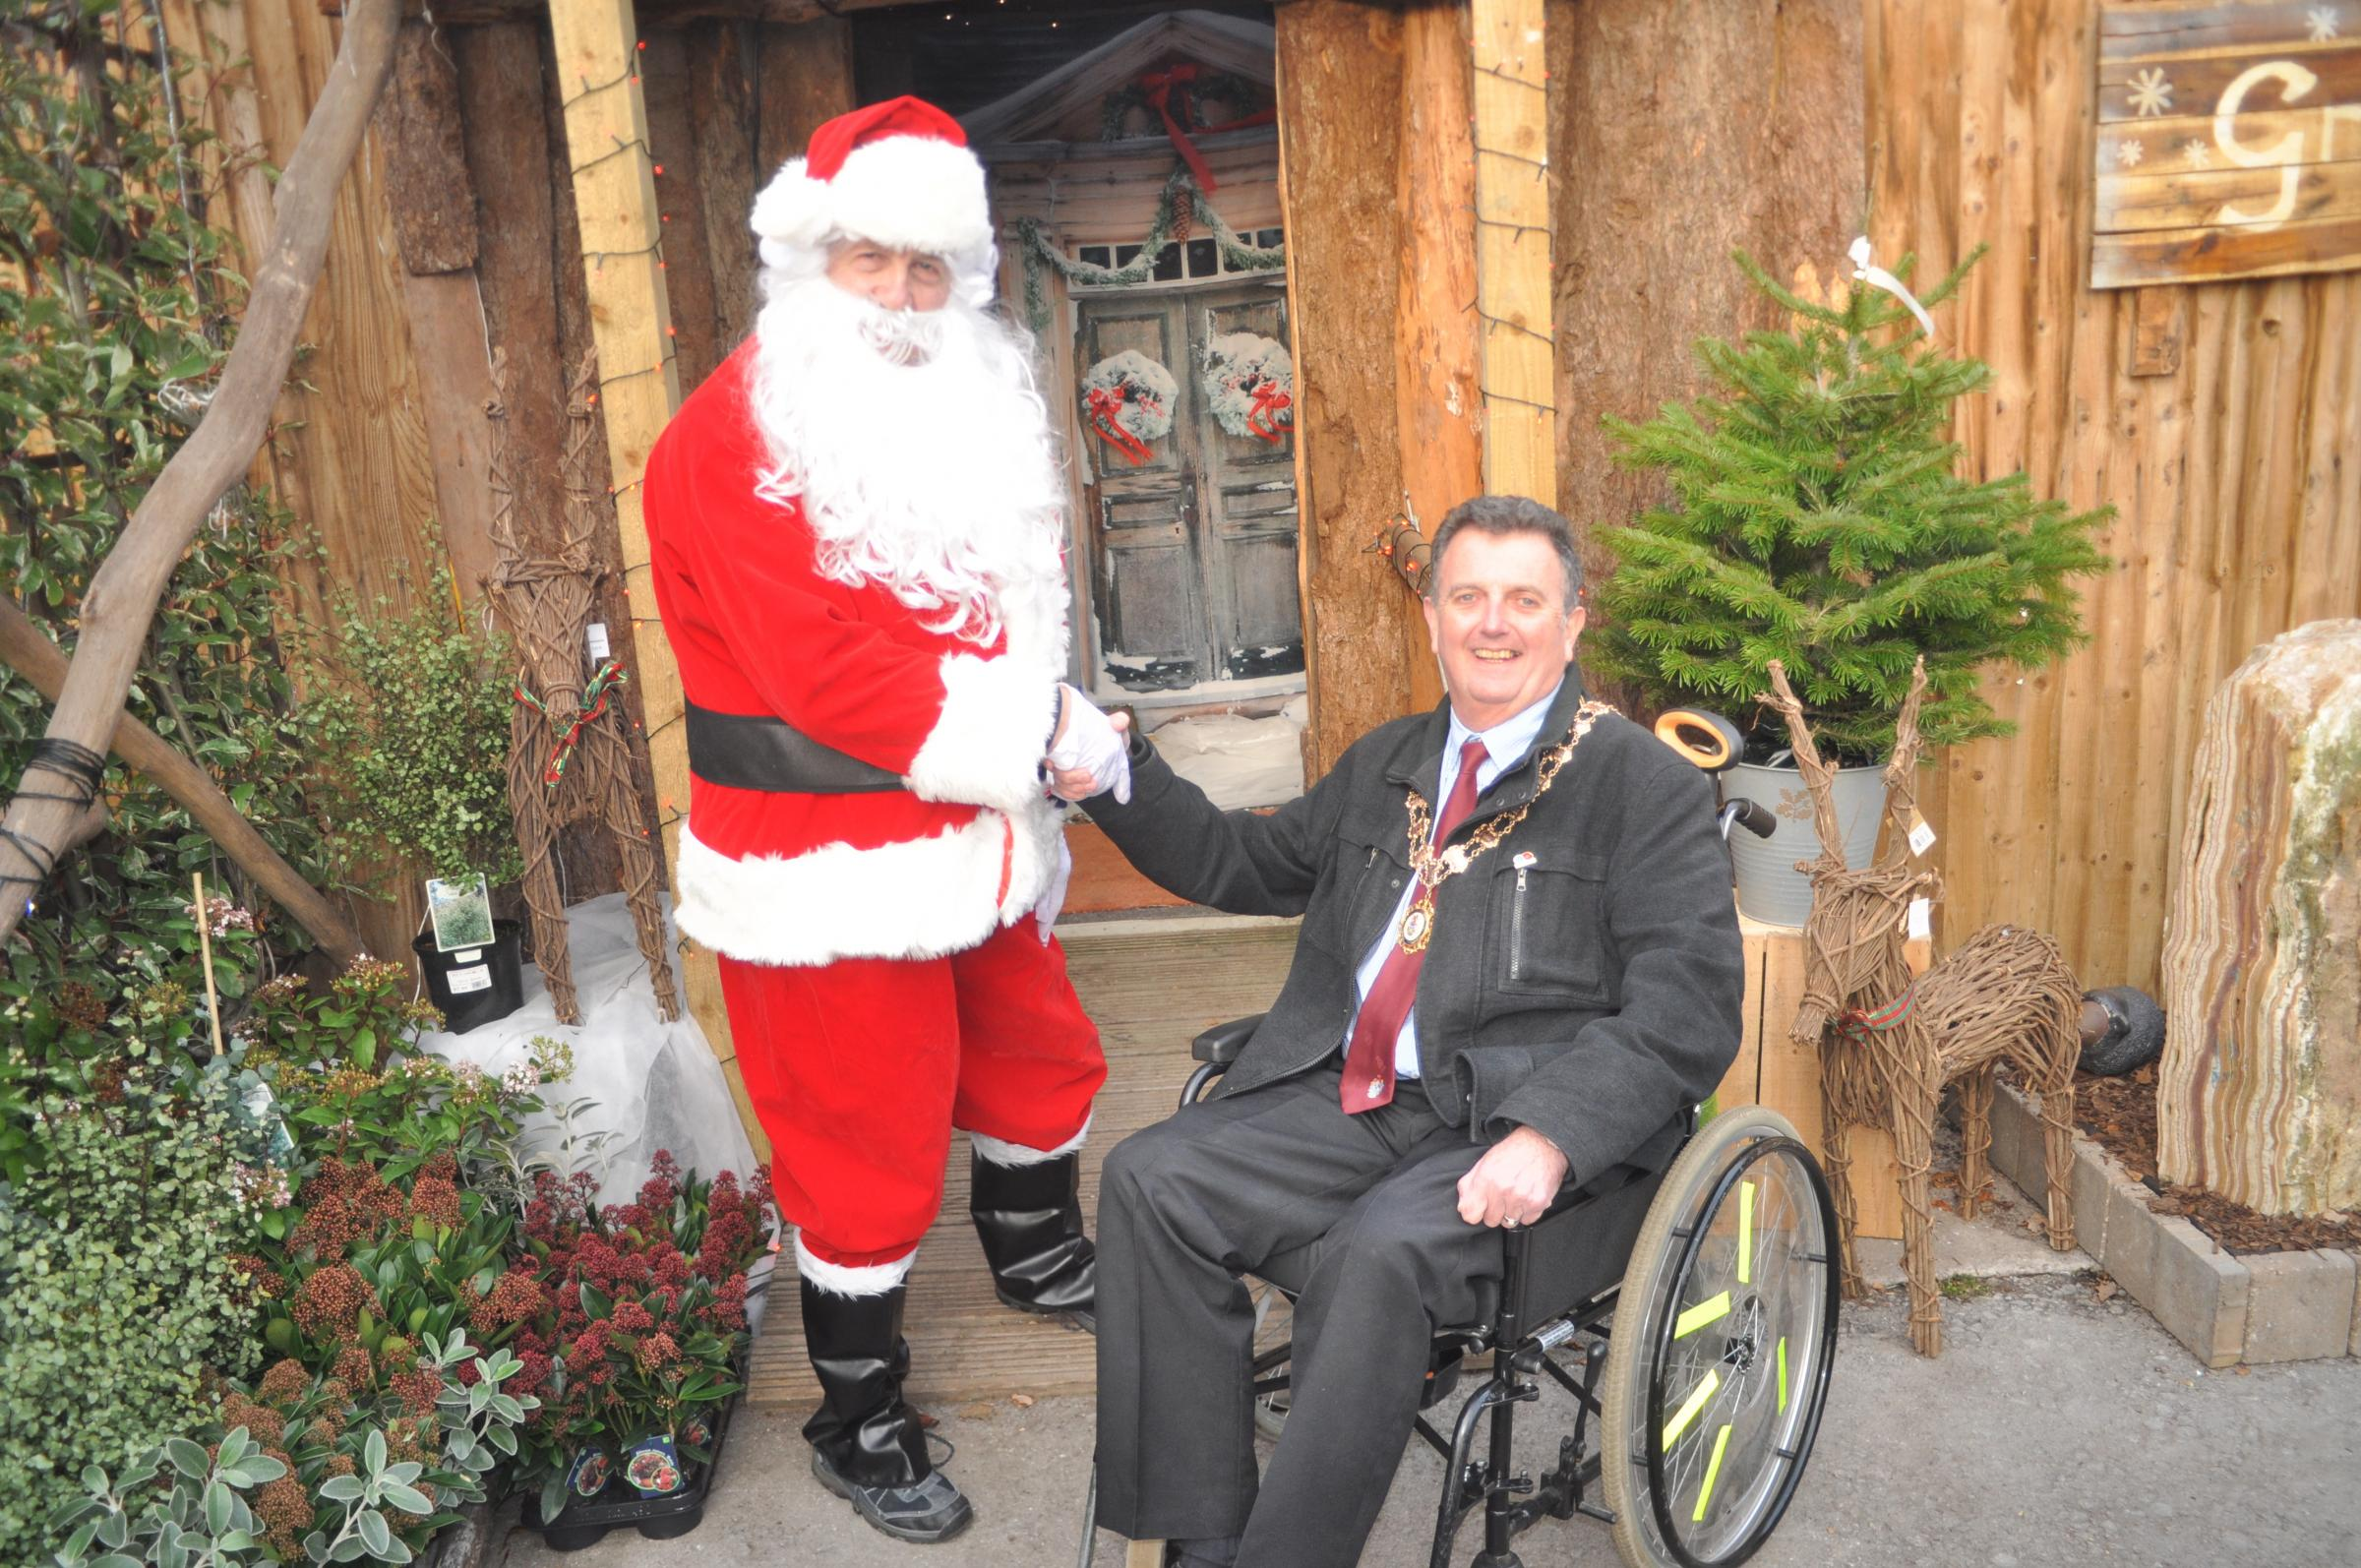 Knutsford town mayor Cllr Neil Forbes meets Father Christmas at the grotto